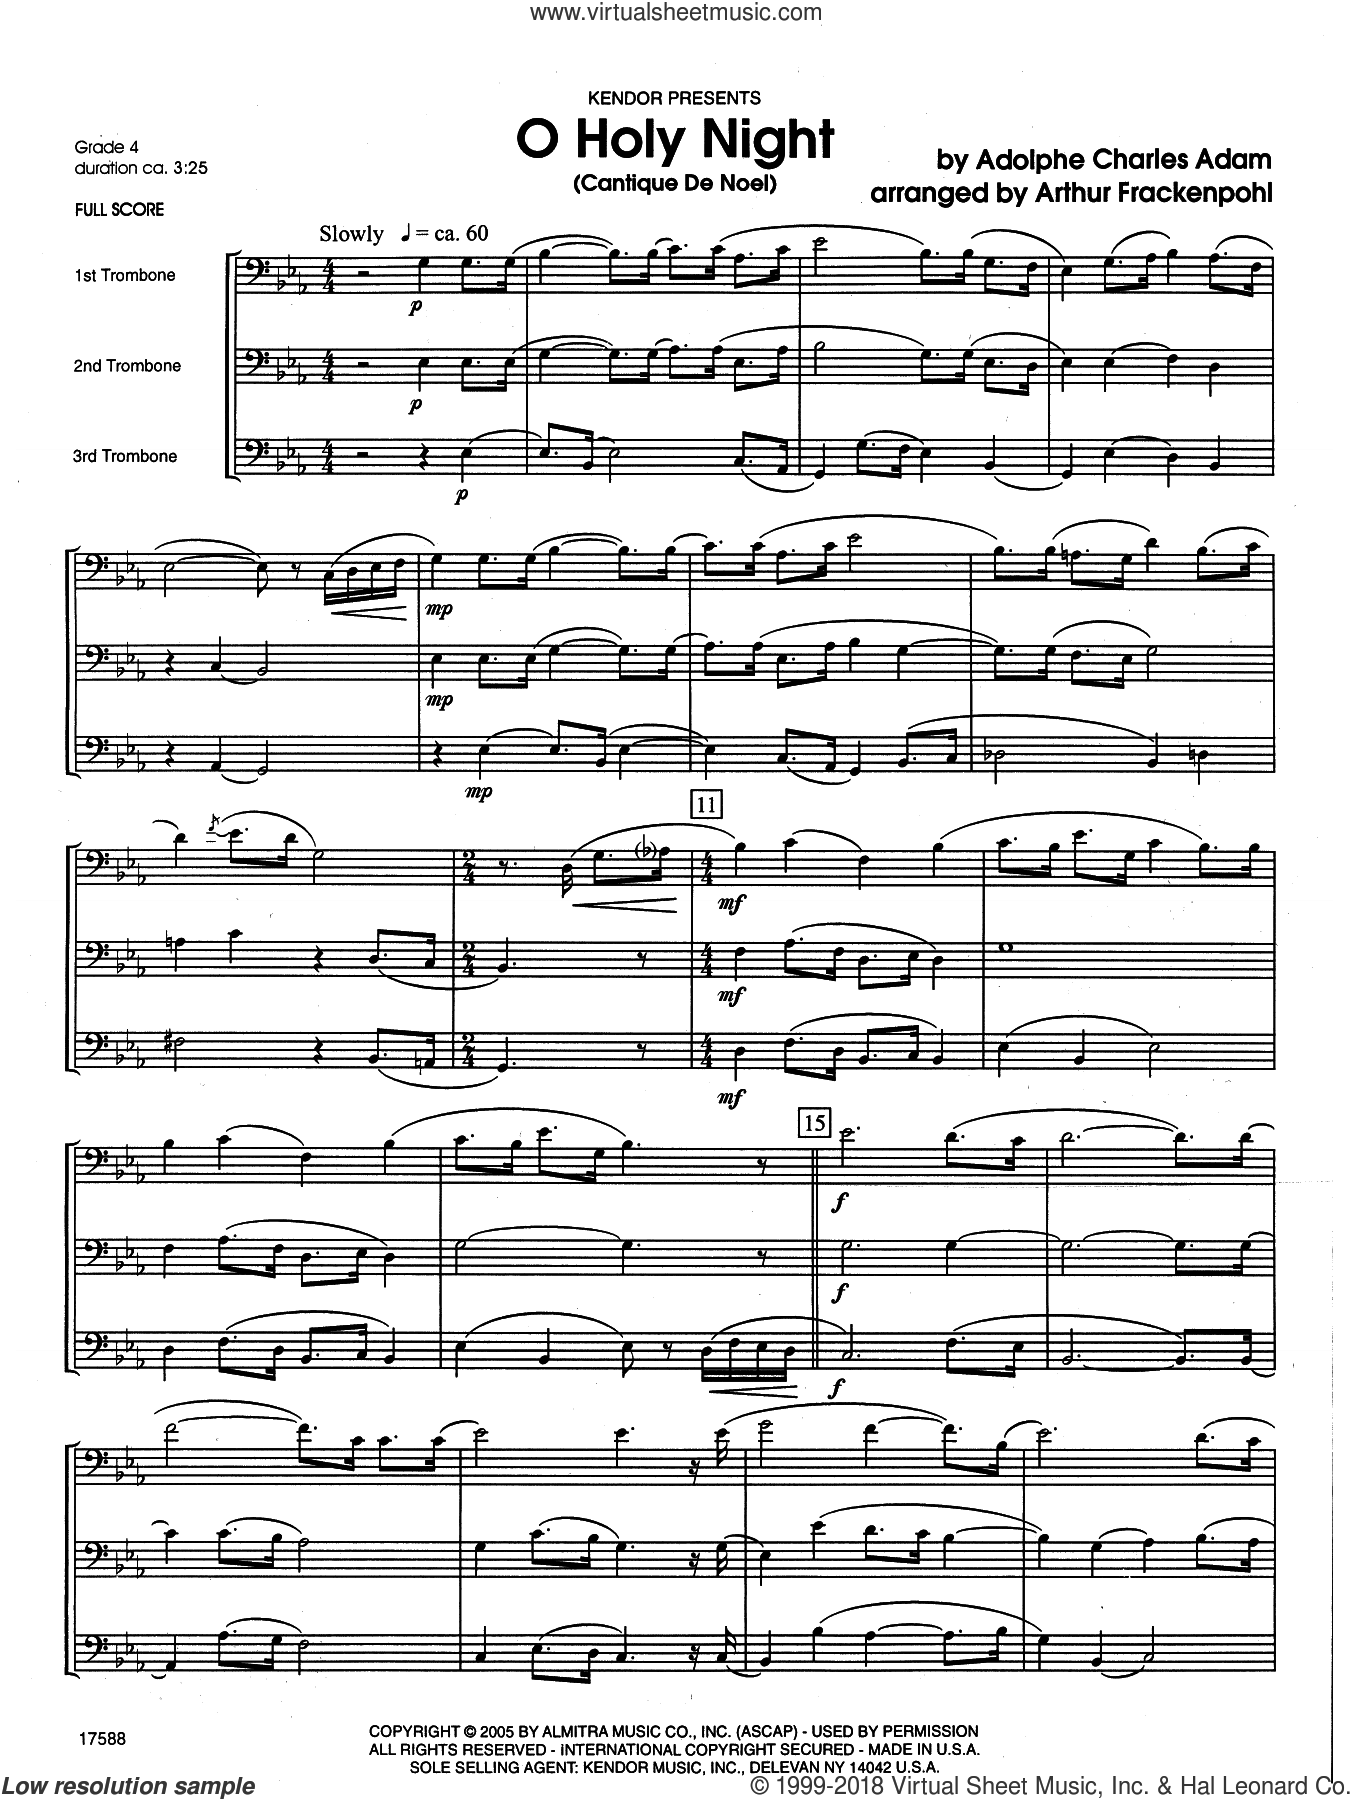 O Holy Night (Cantique de Noel) (COMPLETE) sheet music for trombone trio by Arthur Frackenpohl and Adolphe Adam, Christmas carol score, intermediate trombone trio. Score Image Preview.